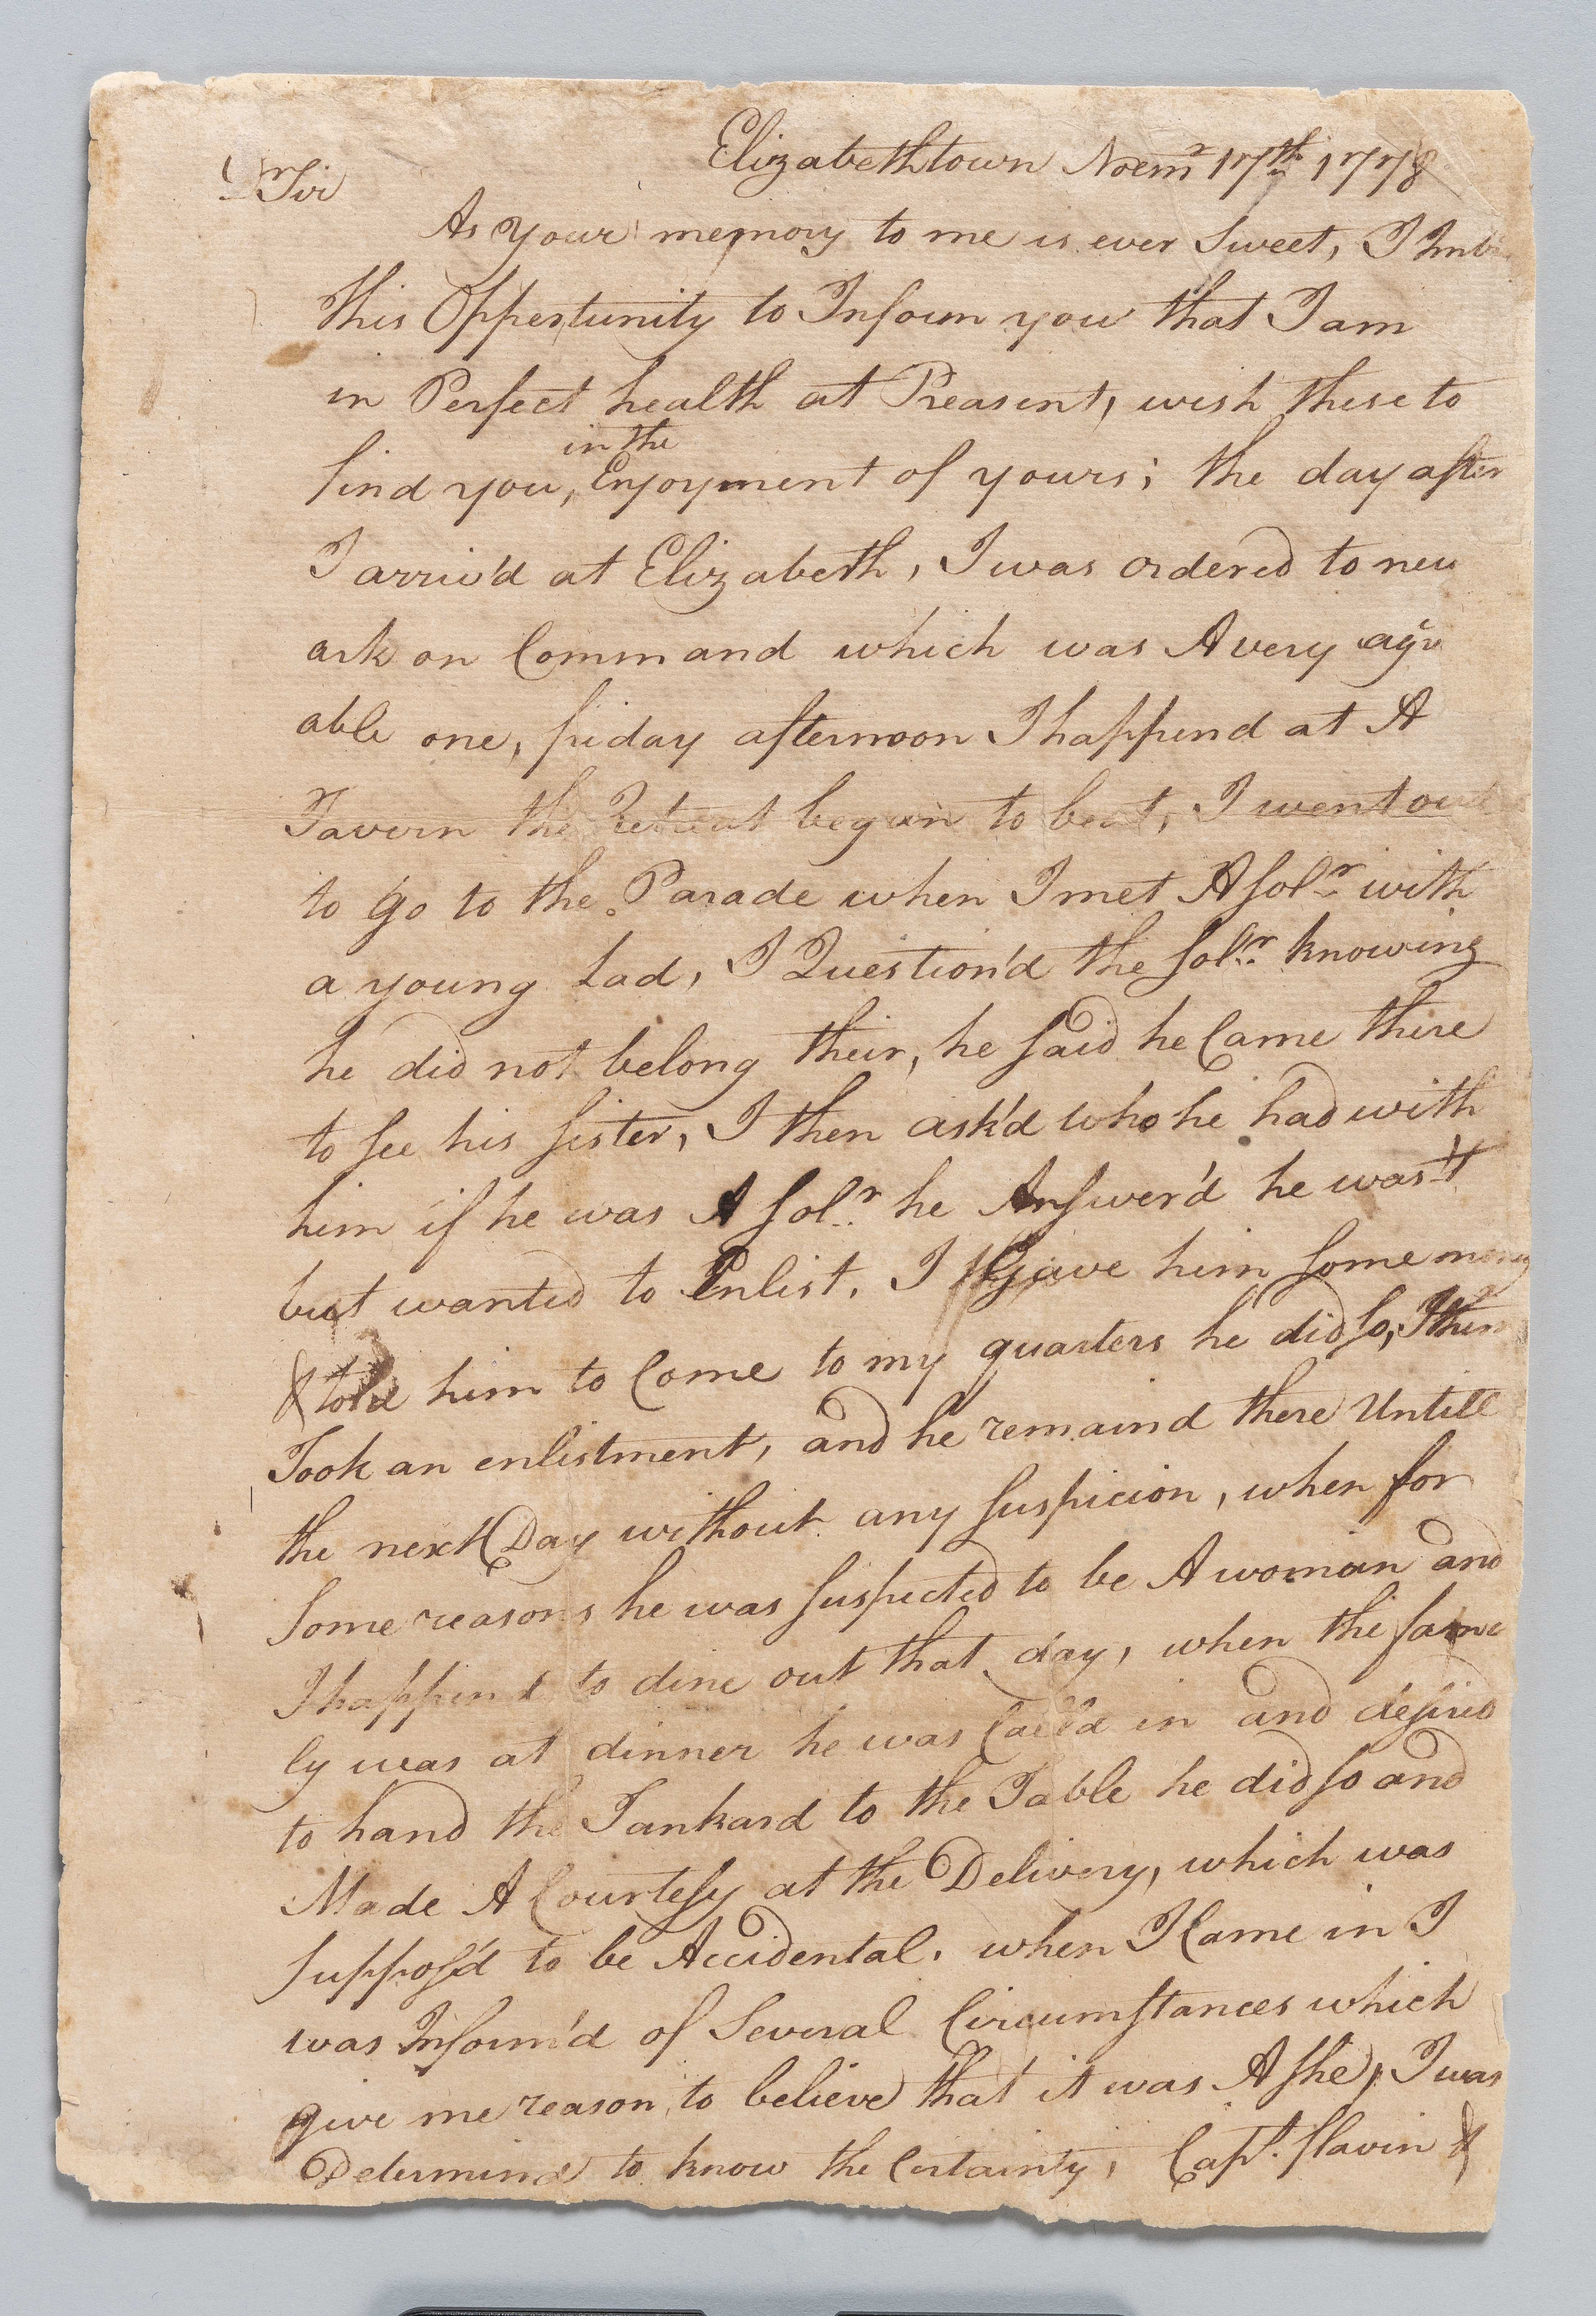 Letter by William Barton on female soldier discovery in Elizabethtown, NJ.